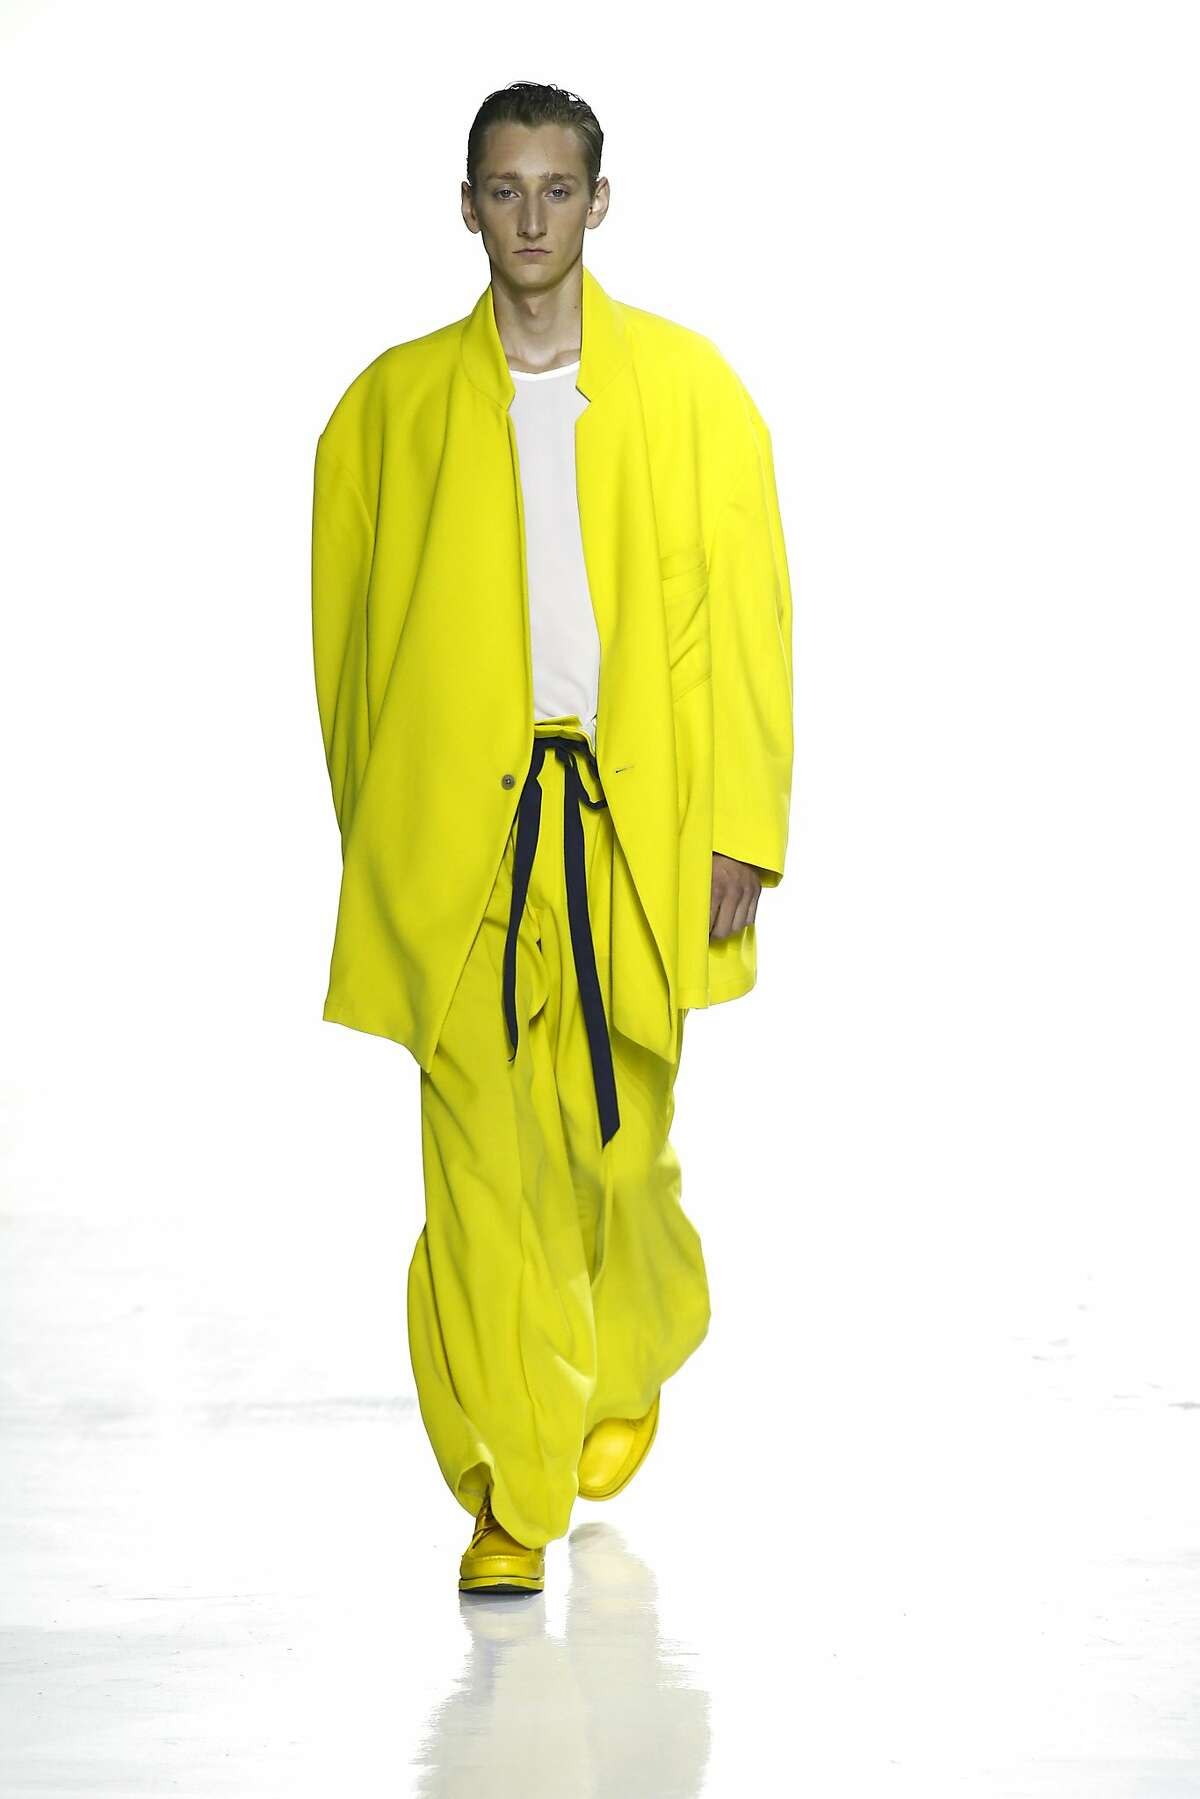 The looks at Duckie Brown, presented July 14 at New York Fashion Week: Mens, combined volume with eye-popping colors like chartreuse.